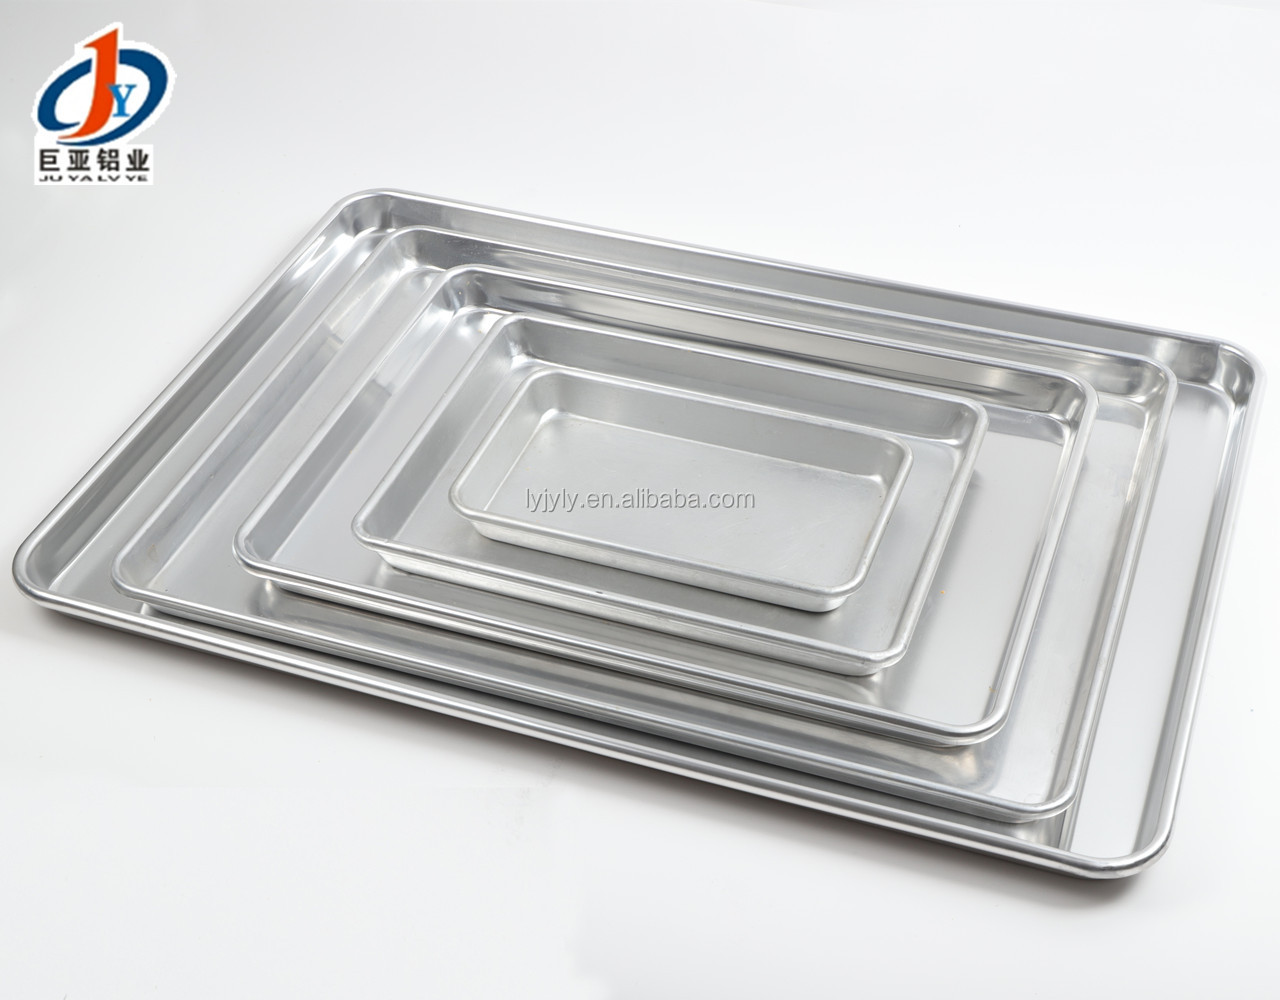 "Bakery Oven Use 3003 18 Gauge Half Size 13""x18"" Inch 1/2  Iron Wire Curled Rim Aluminum Alloy Baking Tray Sheet Pan"